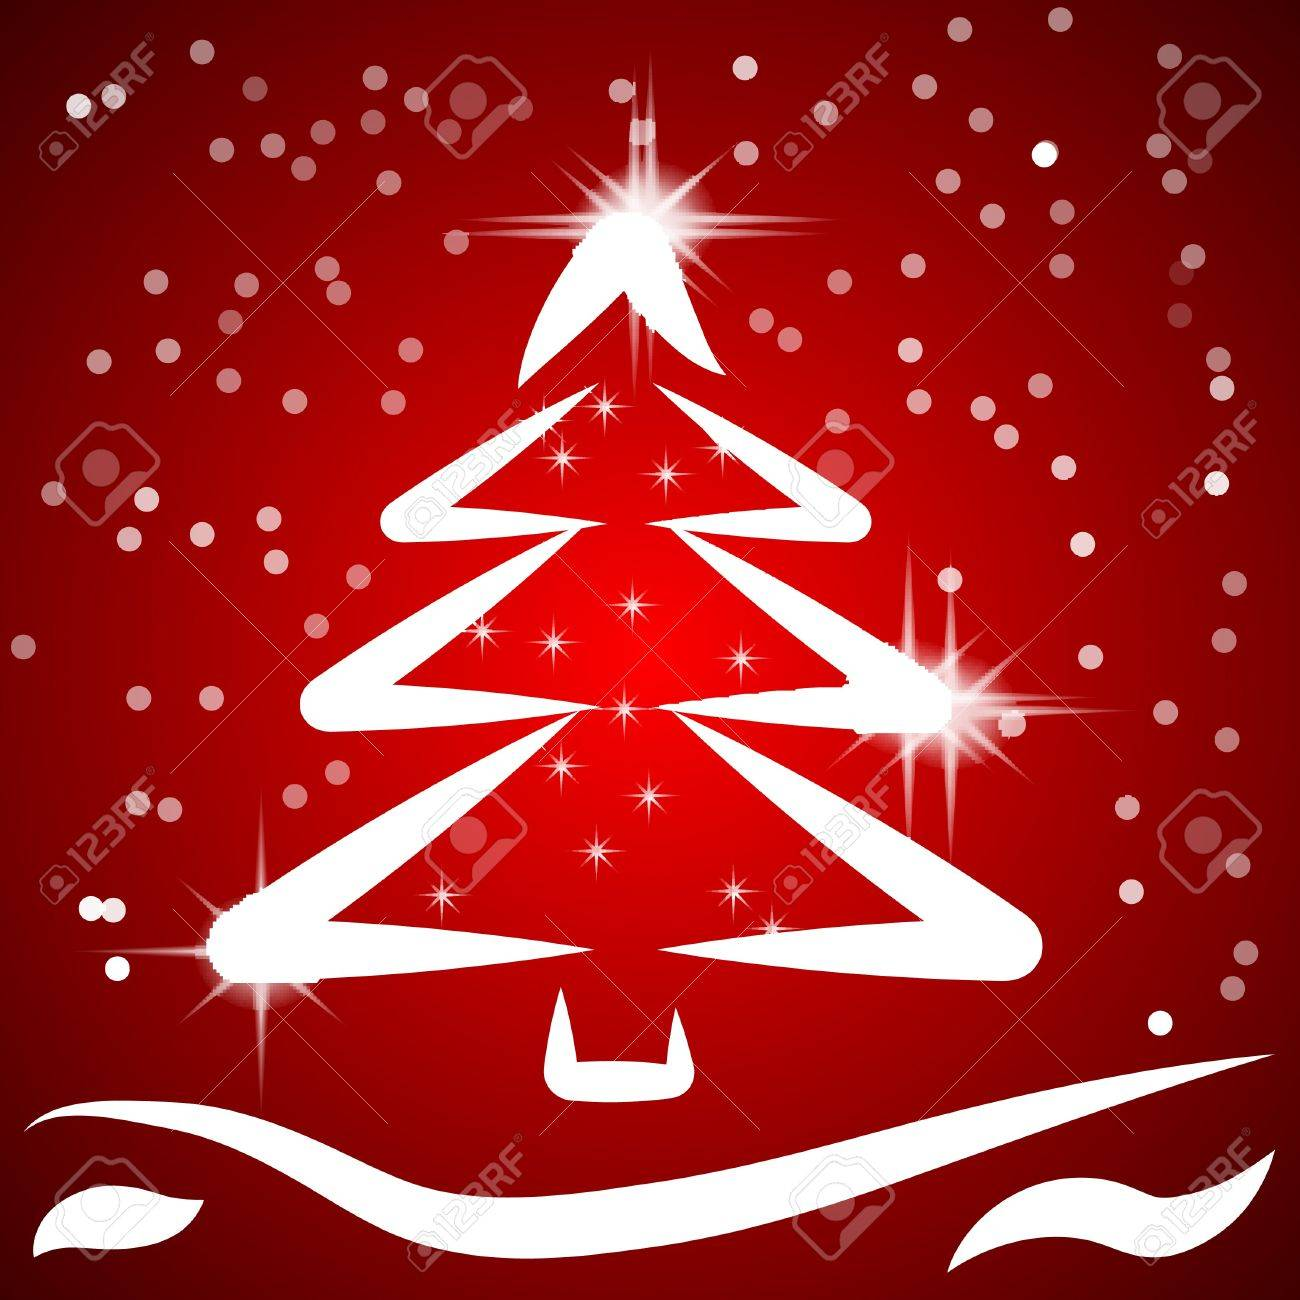 Red Christmas Background With Fancy Tree. Vector. Royalty Free ...